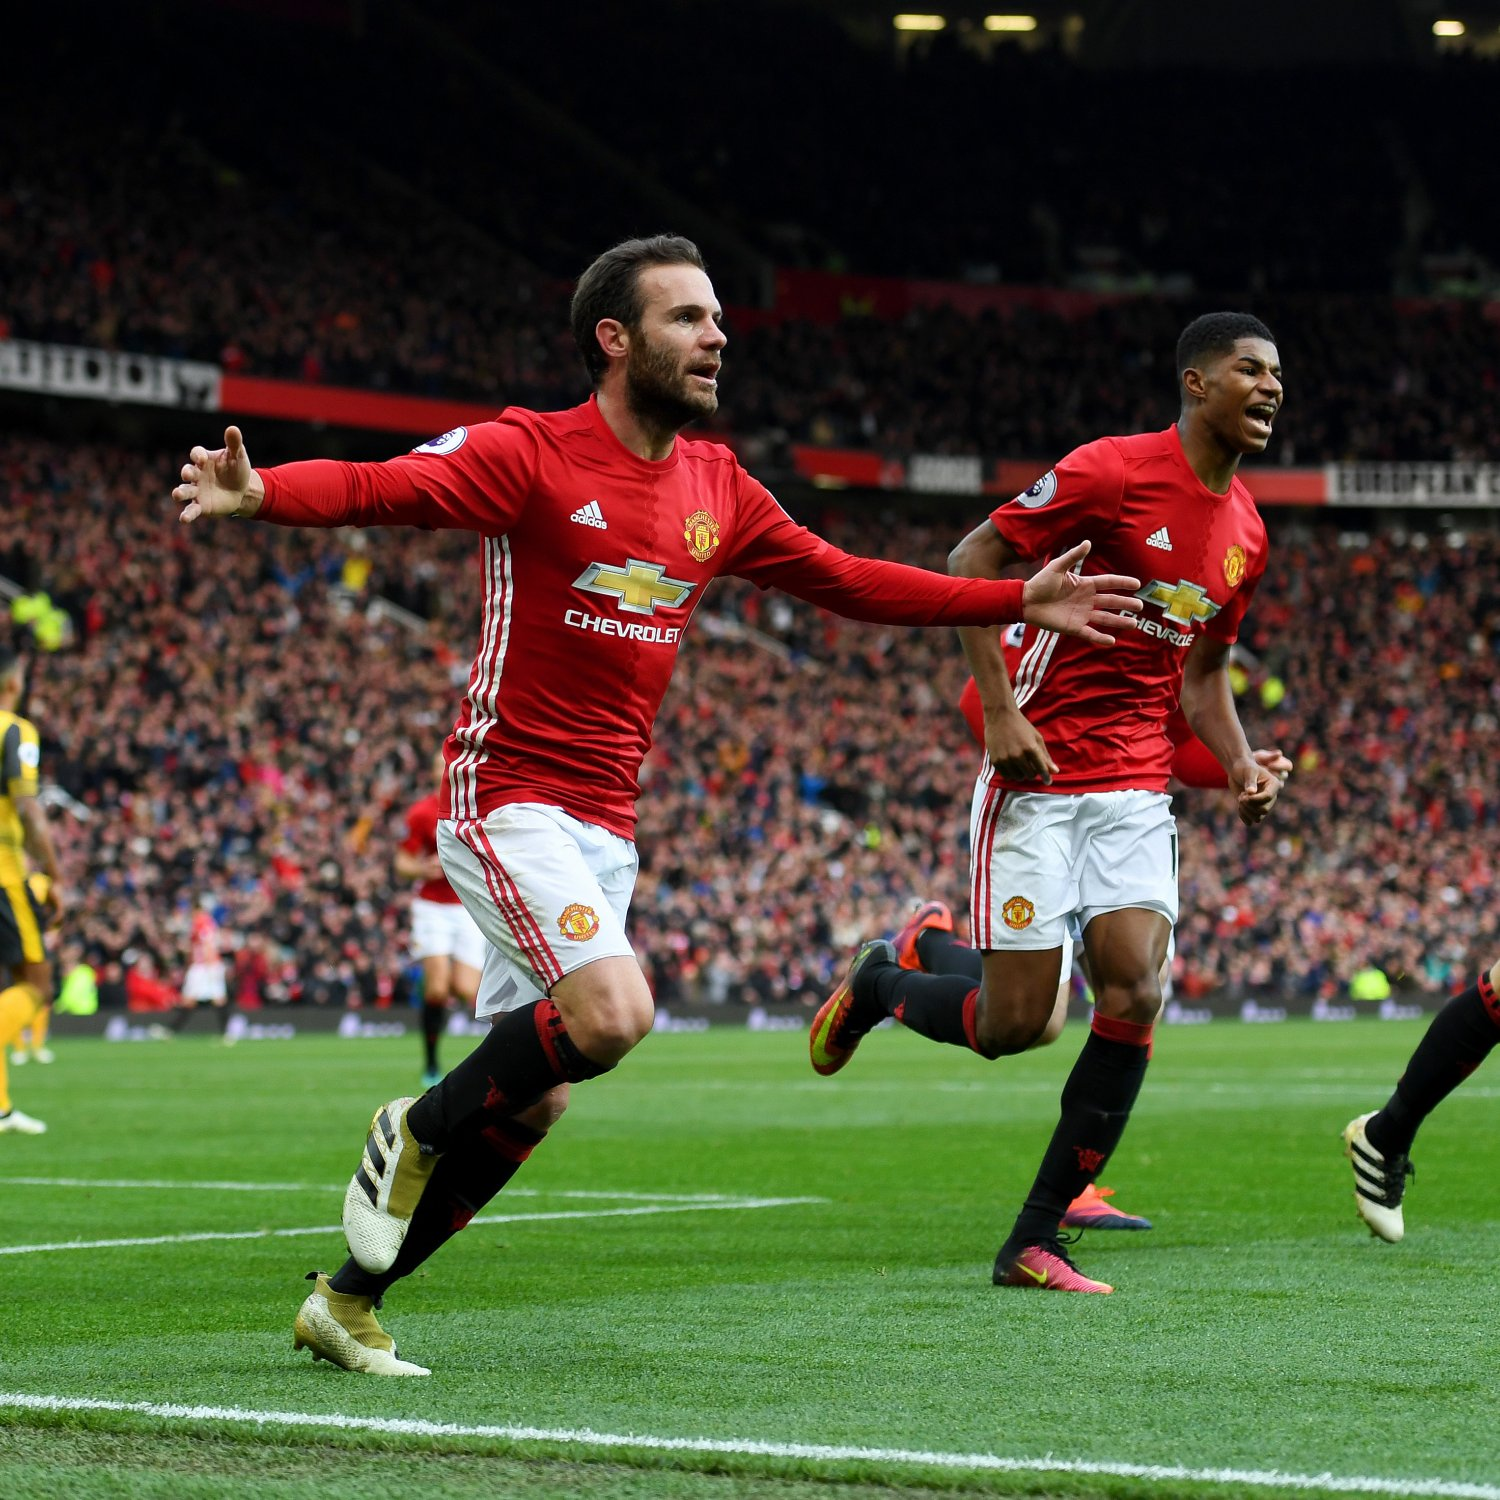 Arsenal Vs Tottenham Live Score Highlights From Premier: Manchester United Vs. Arsenal: Score And Reaction From